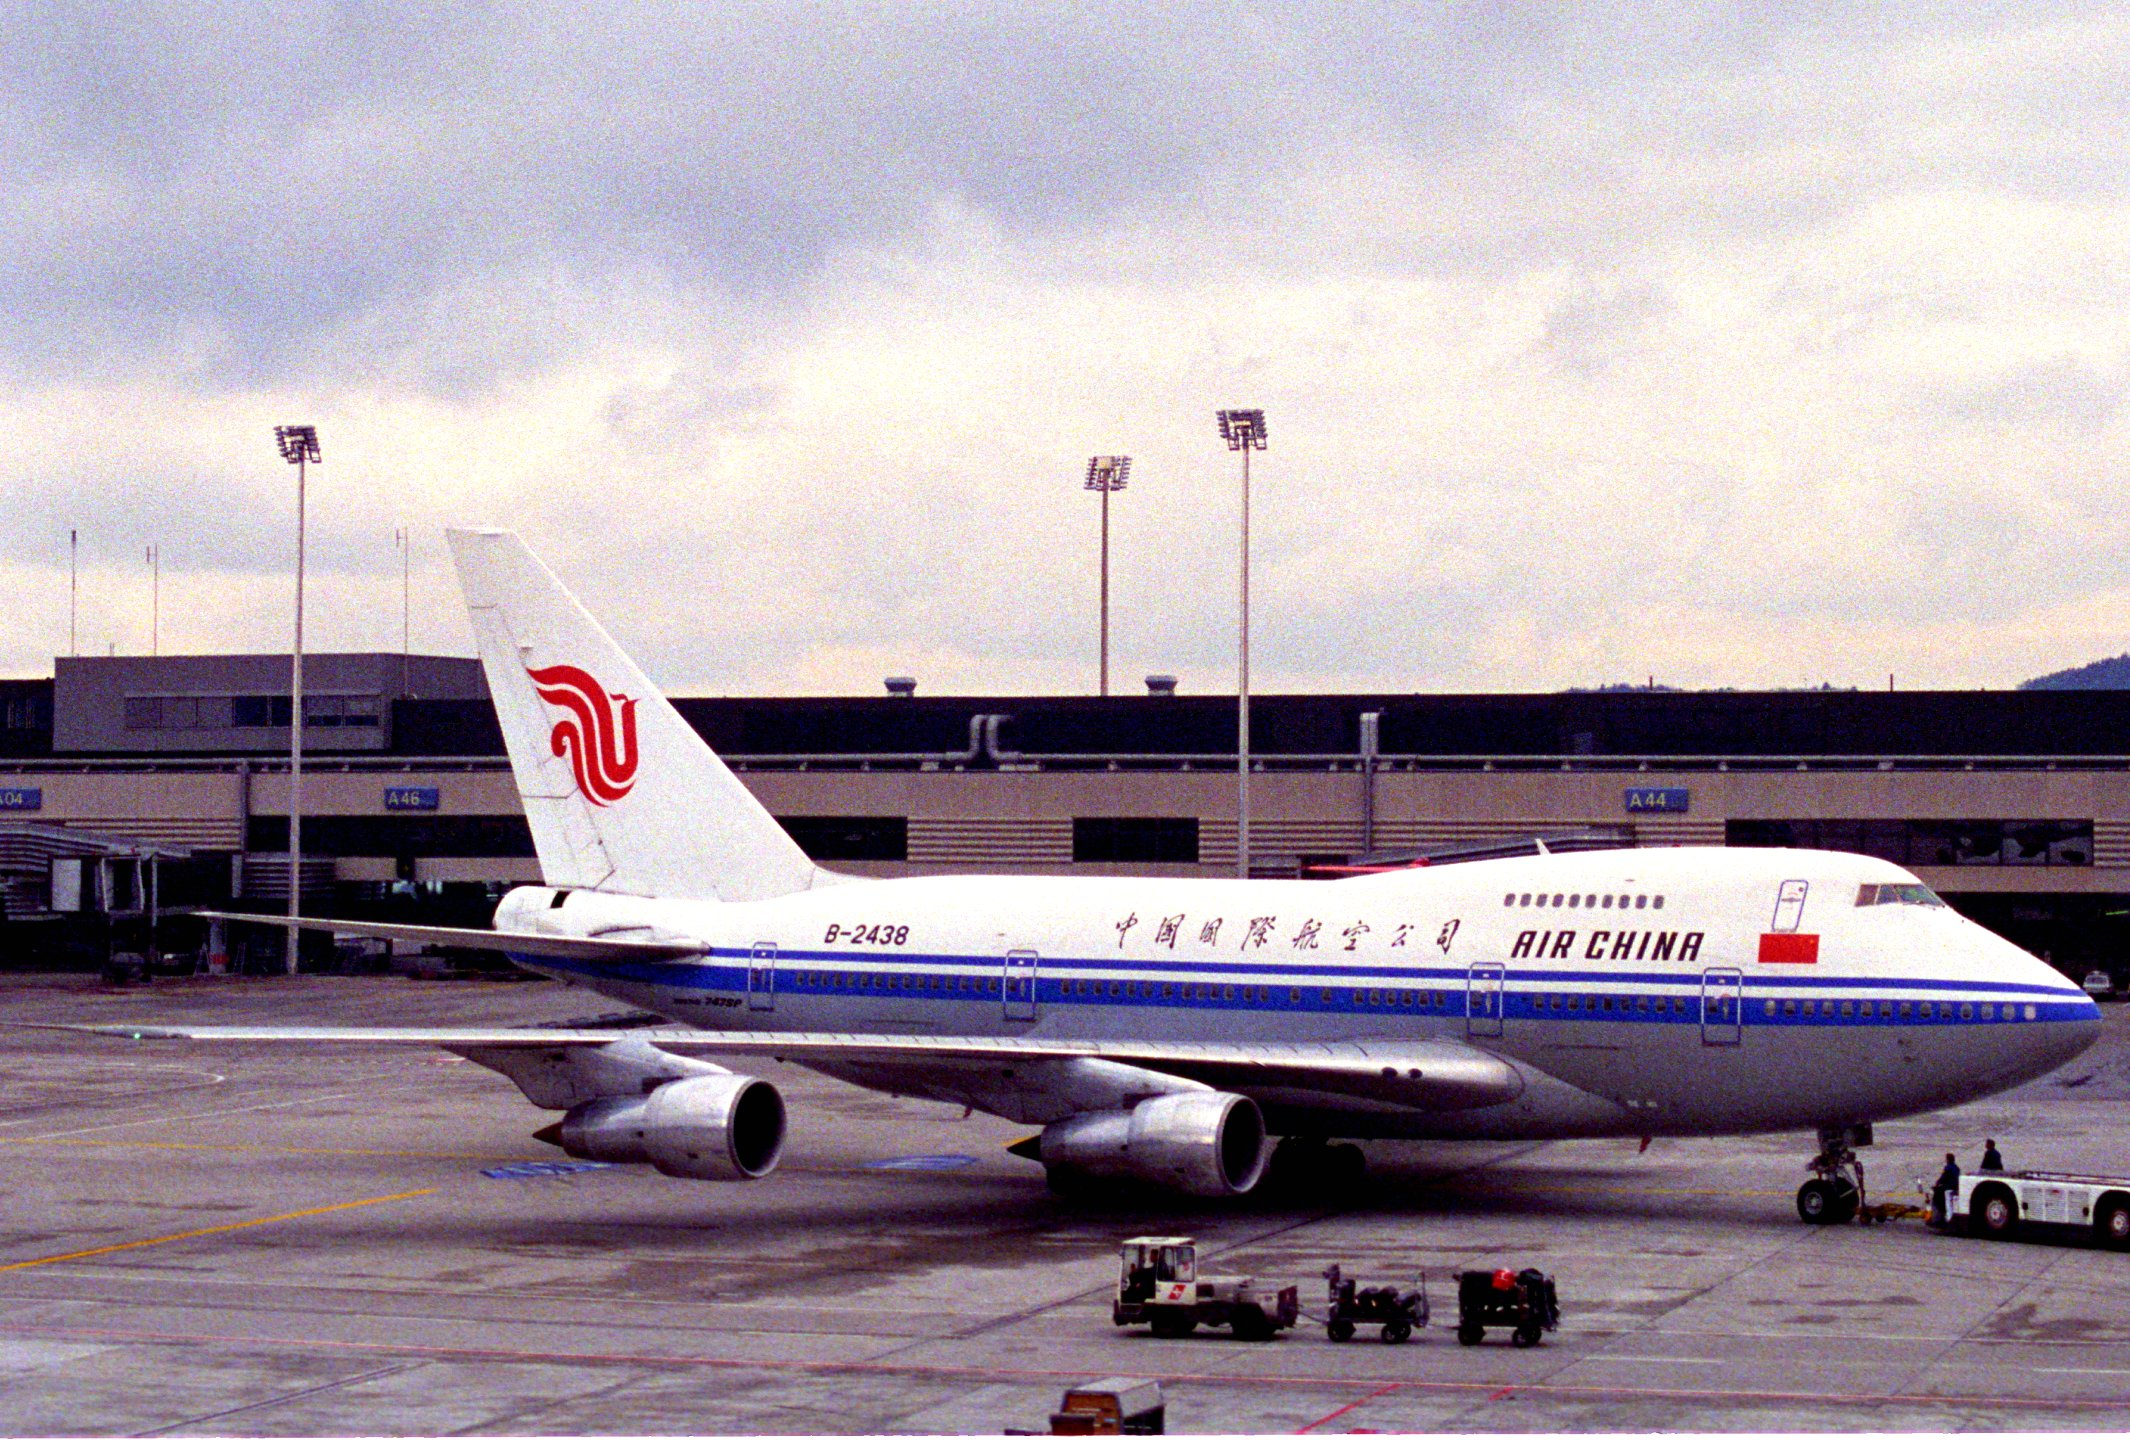 File:Air China Boeing 747SP; [email protected];08.02.1995